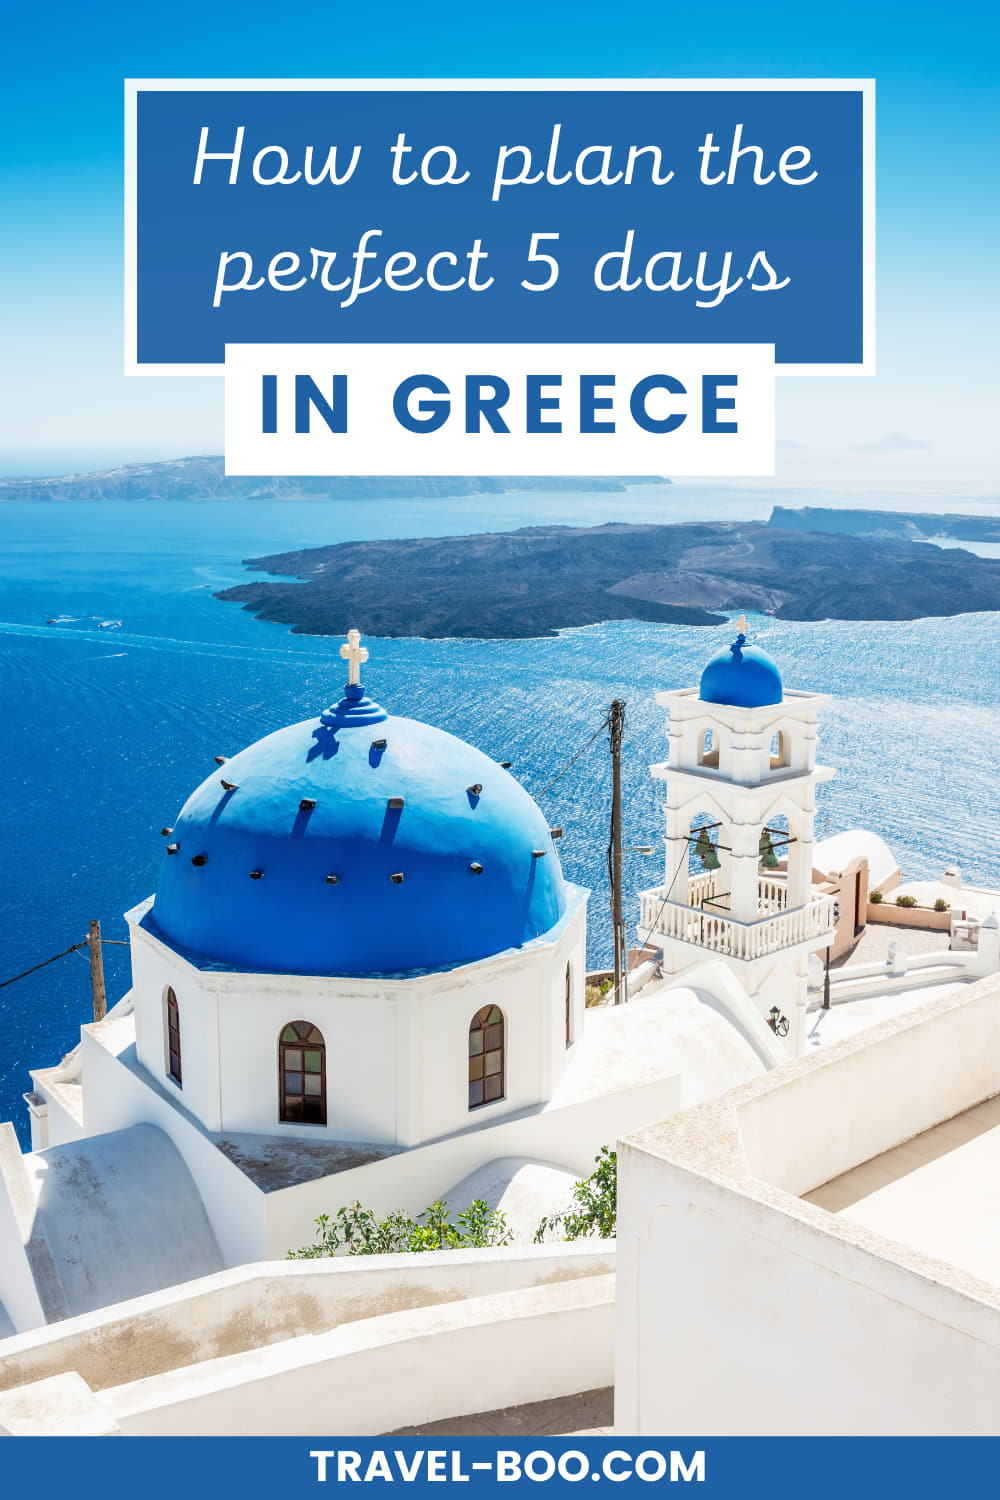 How to plan the perfect 5 days in Greece Itinerary! Greece Travel Itinerary, Visiting Greece, Greece Vacations, Greek Itinerary, Greek Travel Islands.